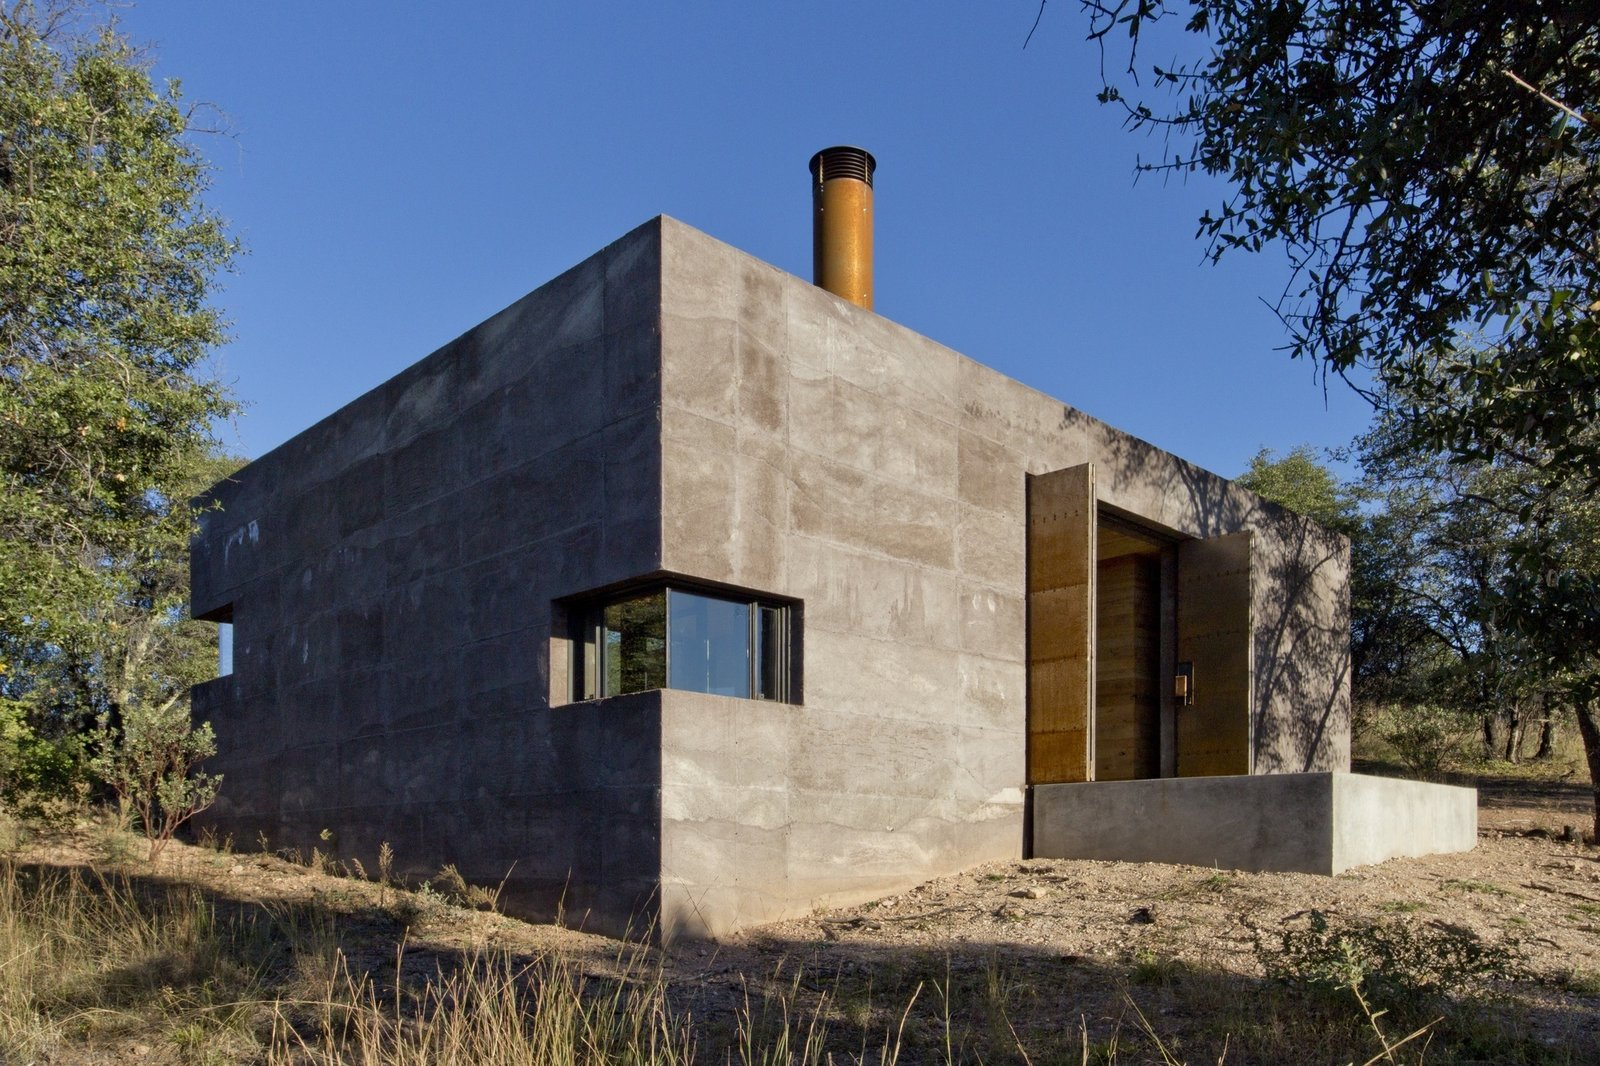 Casa Caldera   Brutal Beauty by Gessato